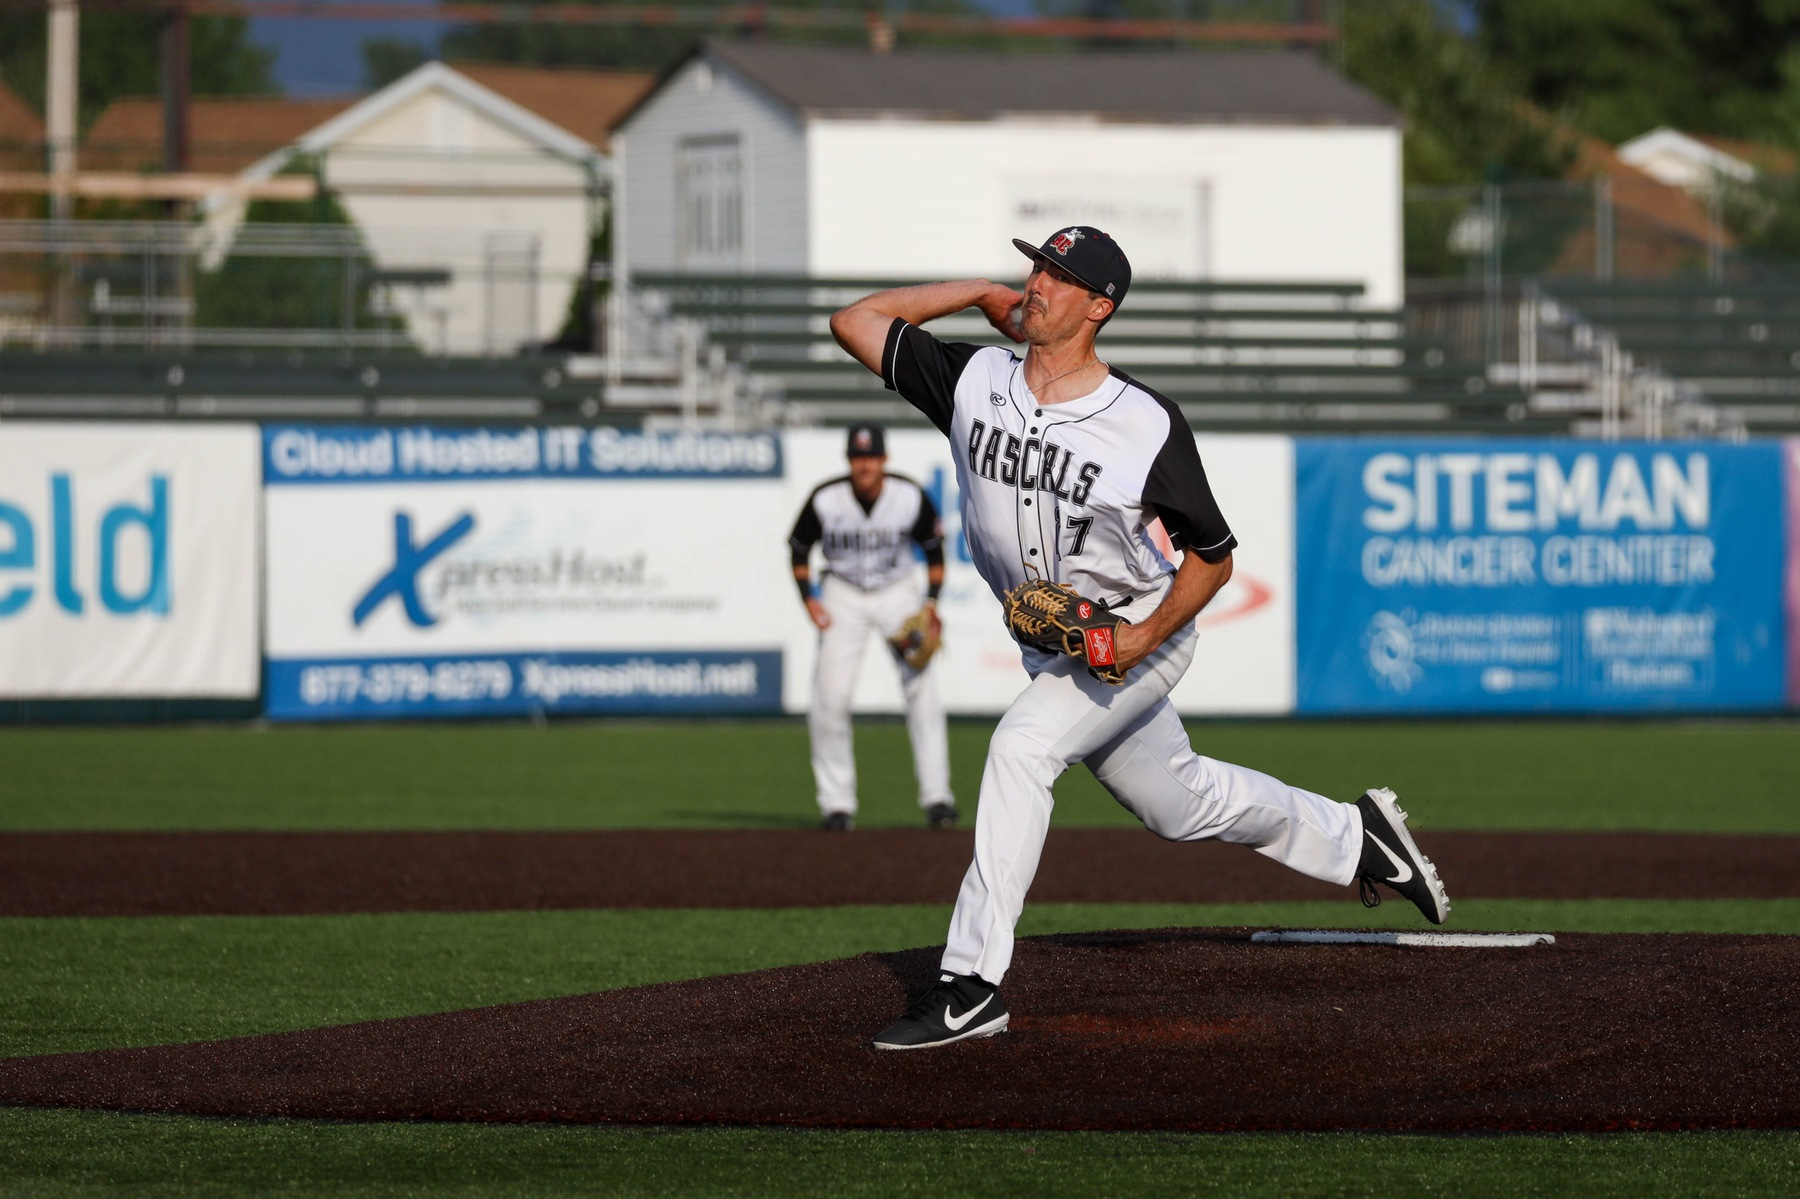 Rascals Take Opener Over Bolts